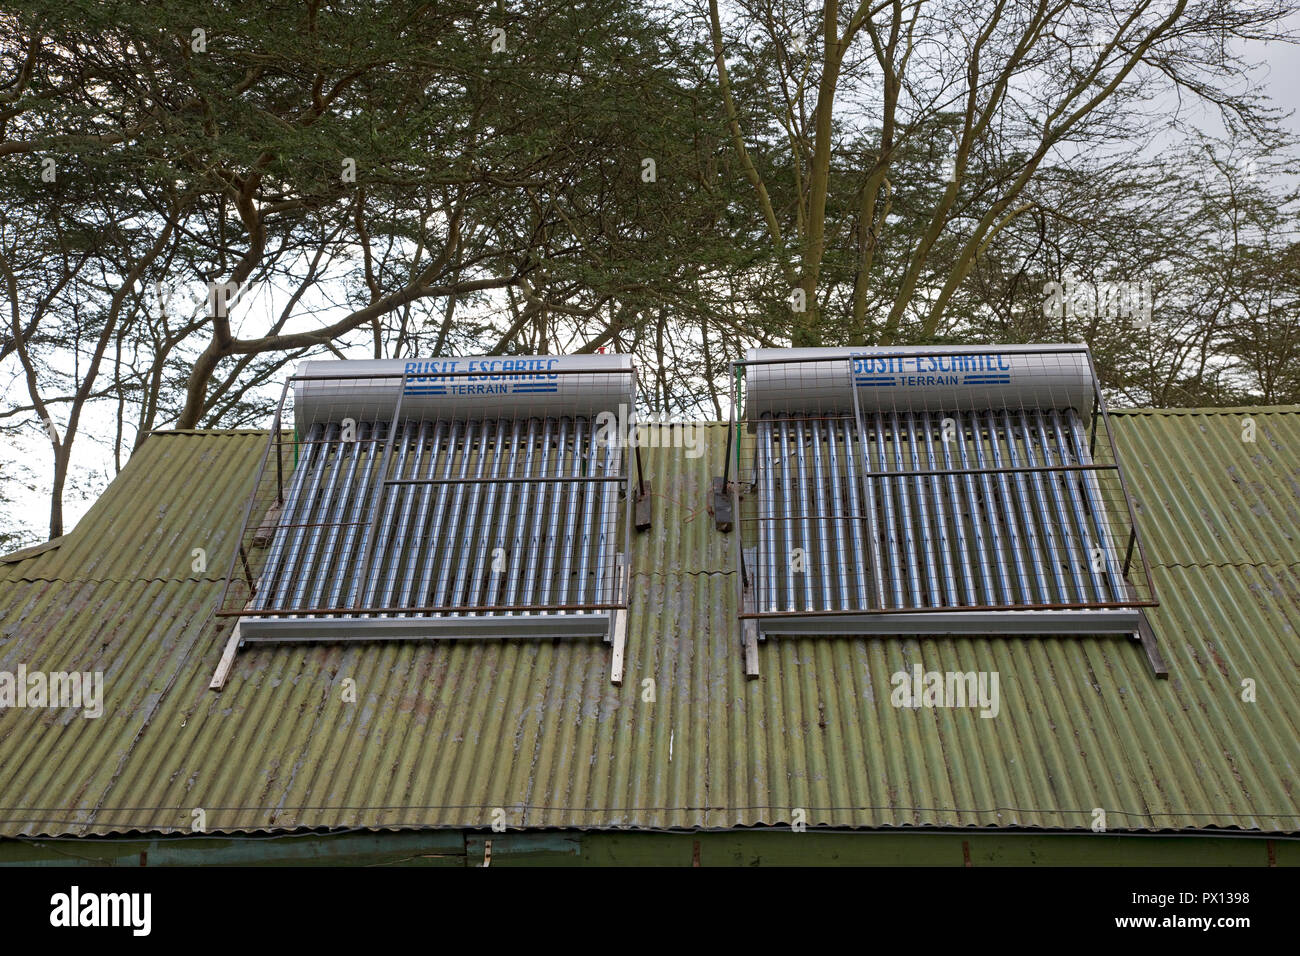 Solar thermal hot water system with storage tank on roof of guest cottage Elsamere Kenya - Stock Image